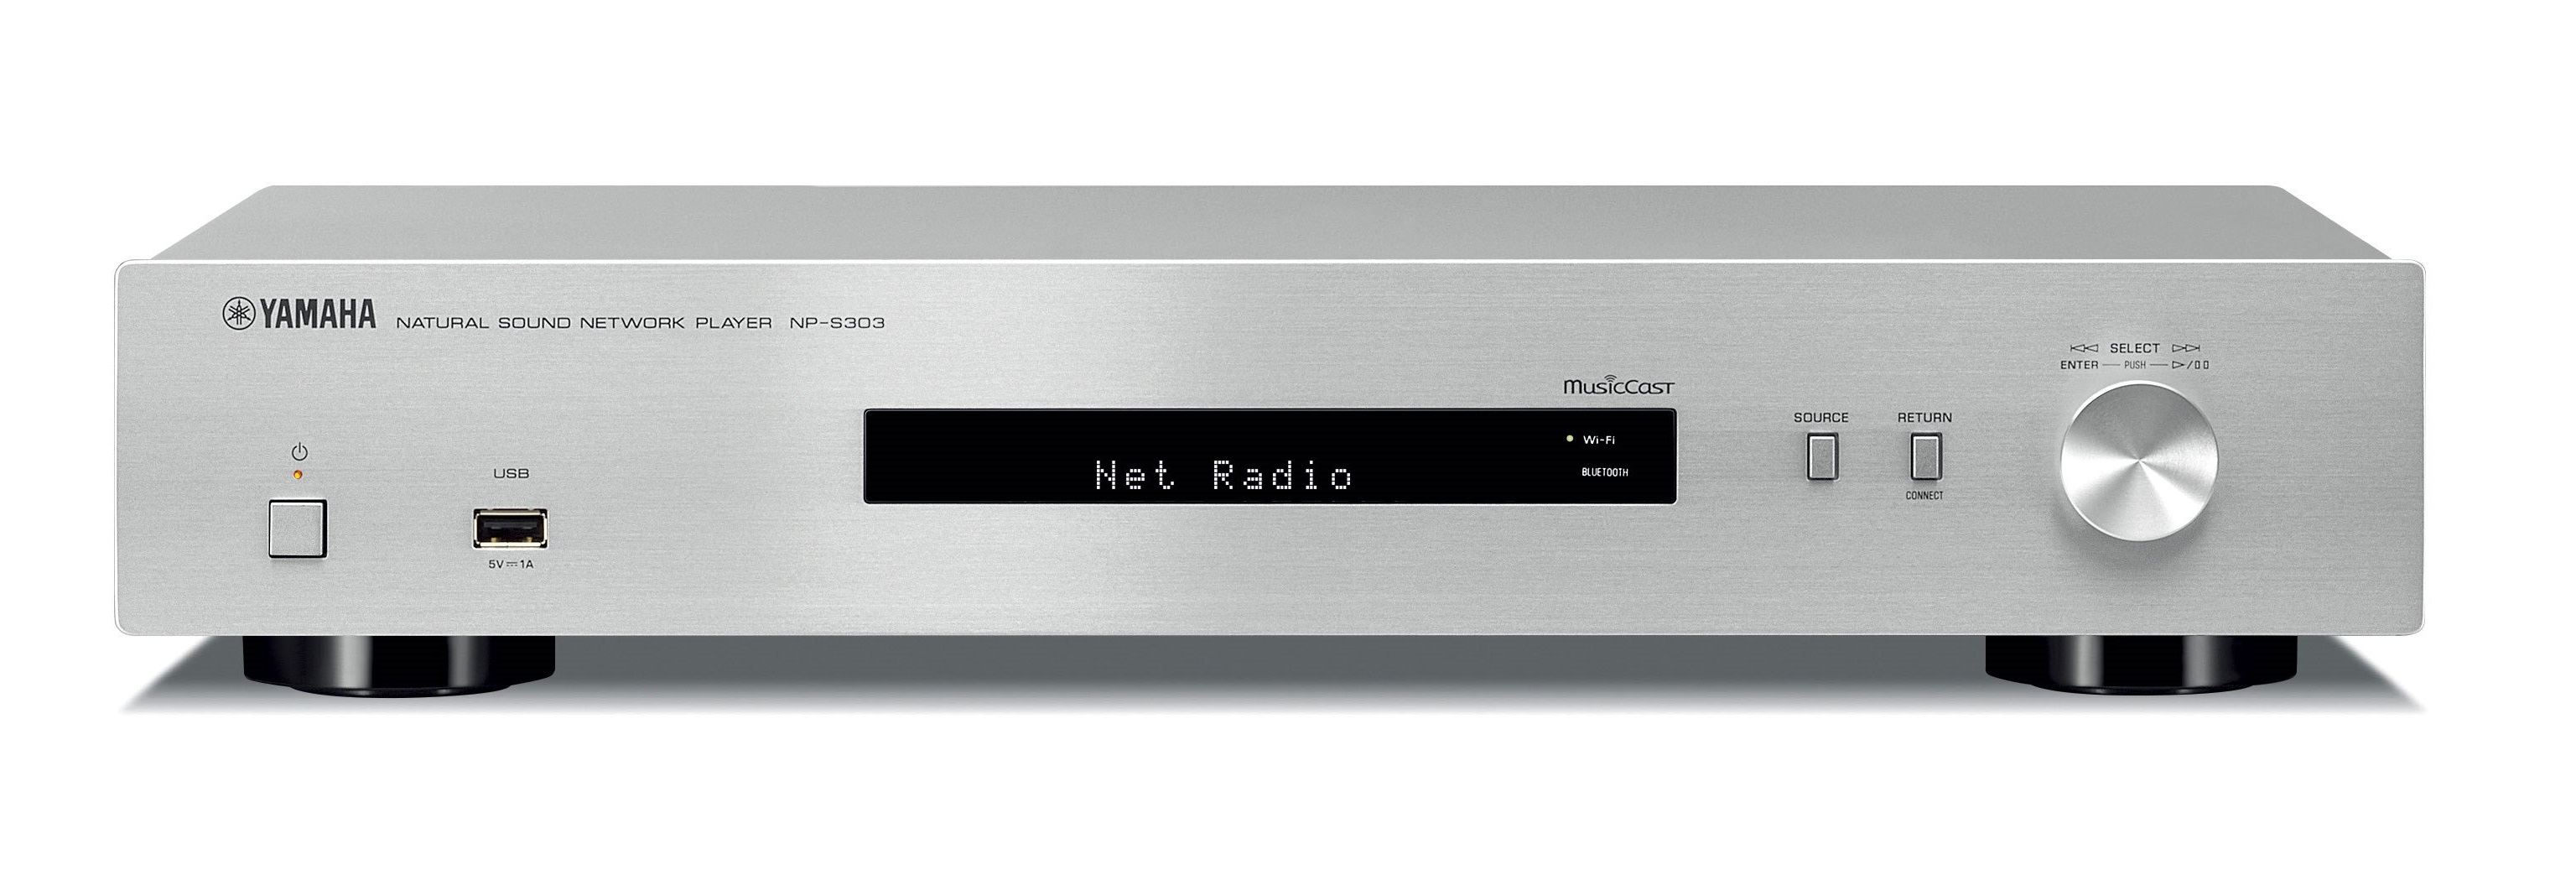 Yamaha Np S303 Network Player